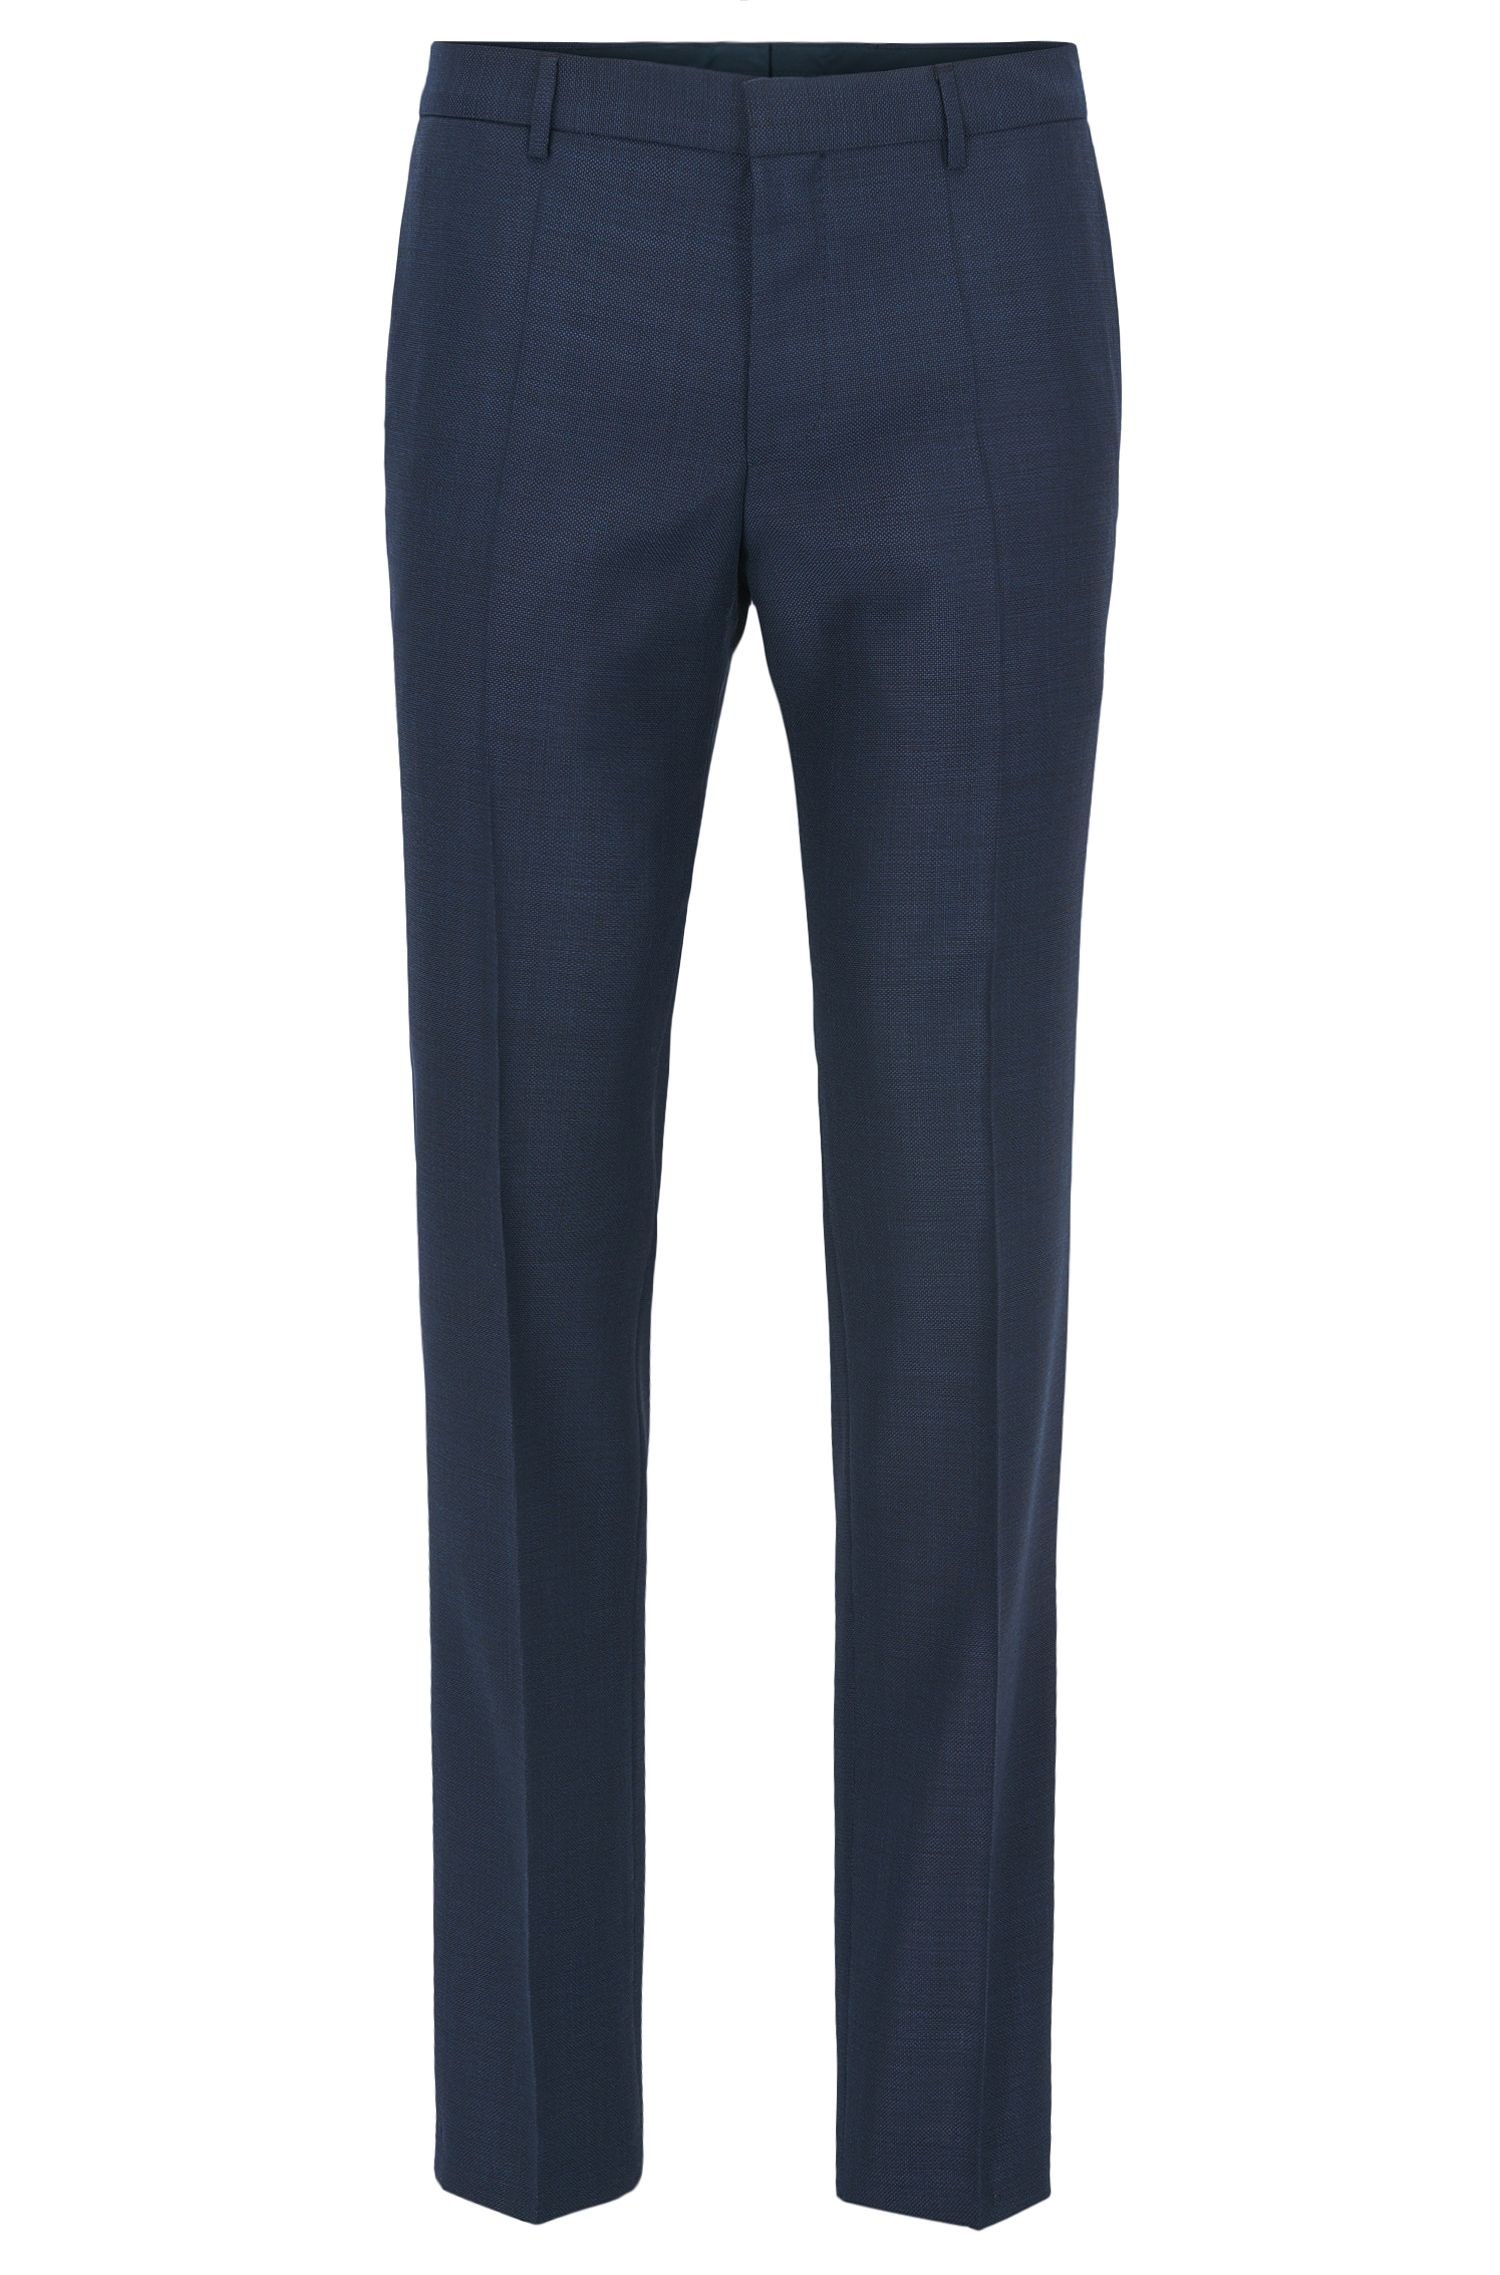 Piped Virgin Wool Dress Pant, Slim Fit | Blake, Dark Blue